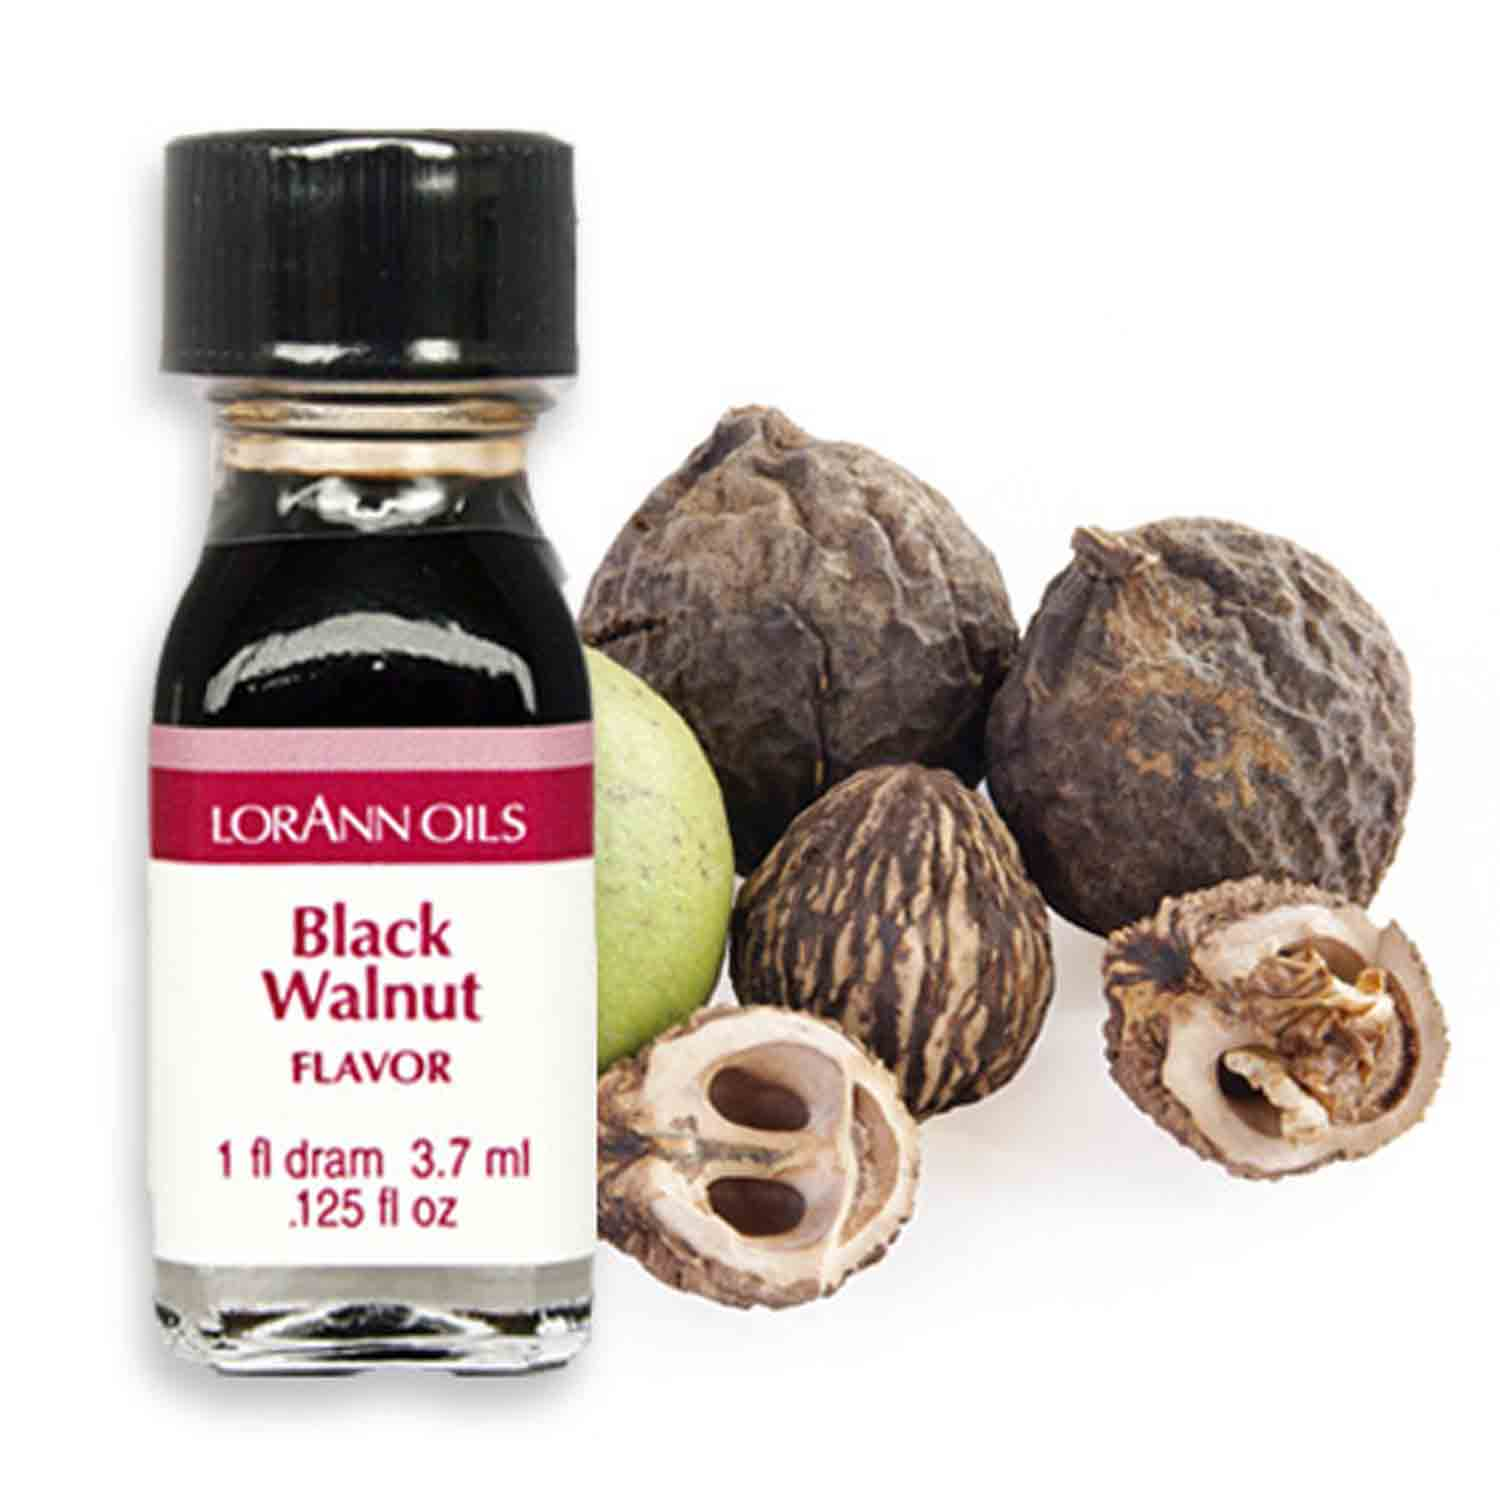 Black Walnut Super-Strength Flavor